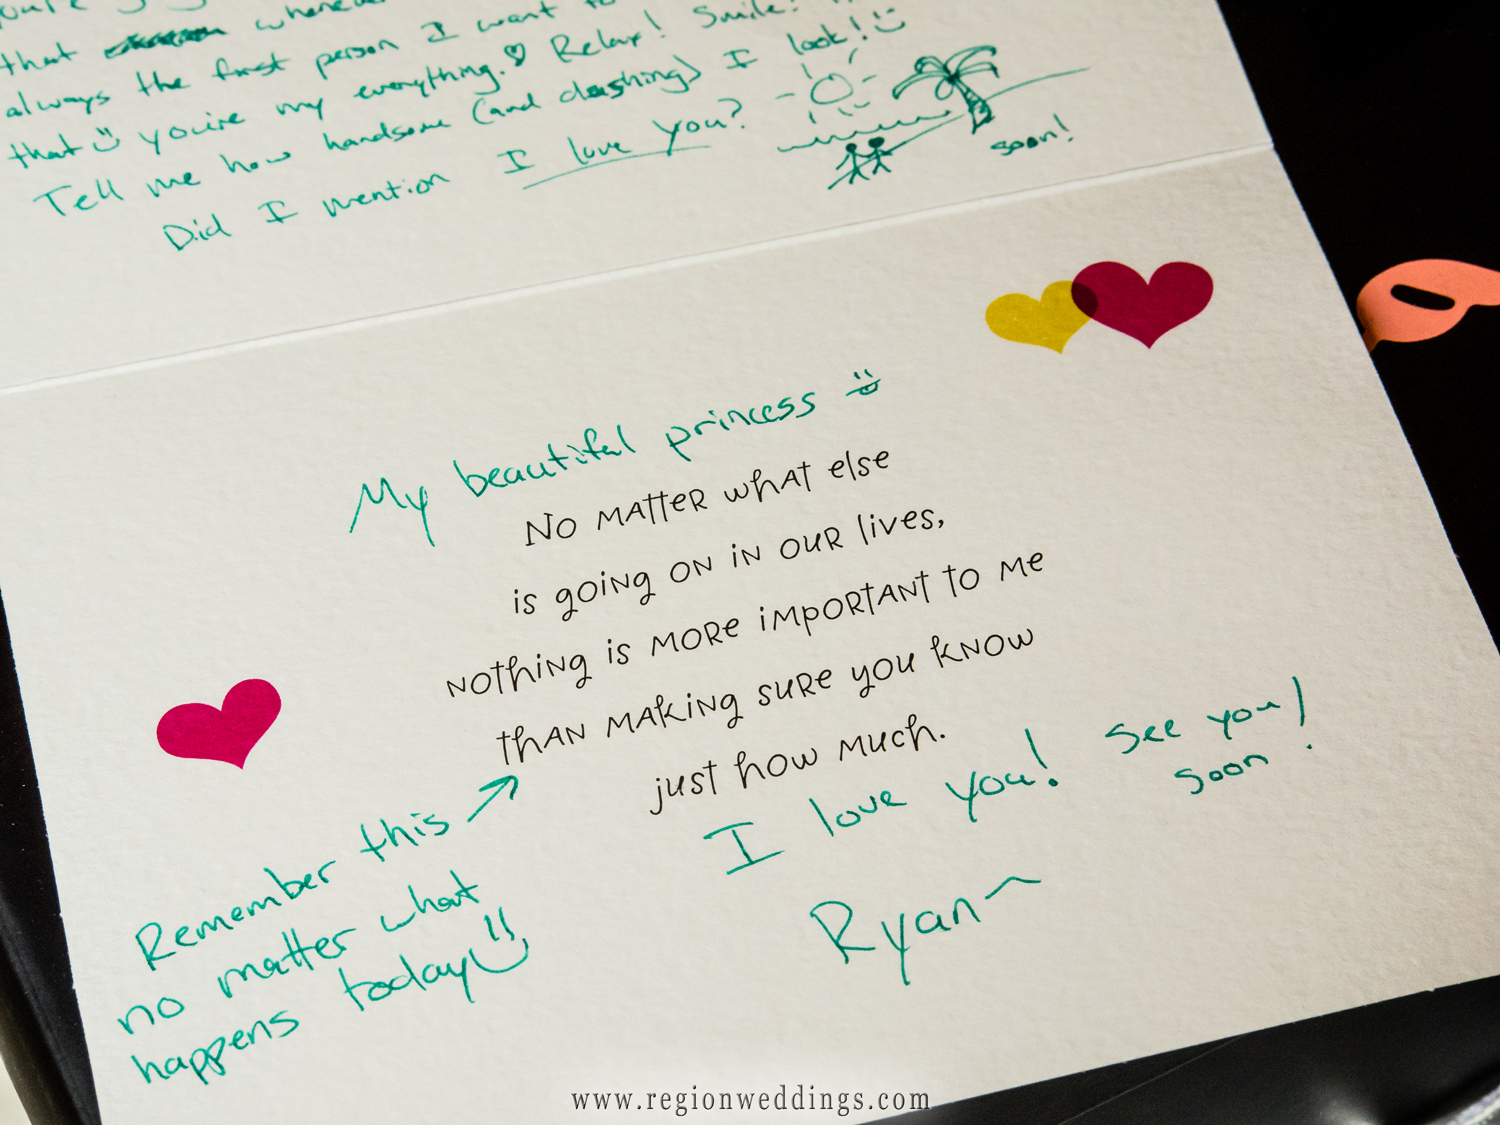 Groom's love letter to his bride.